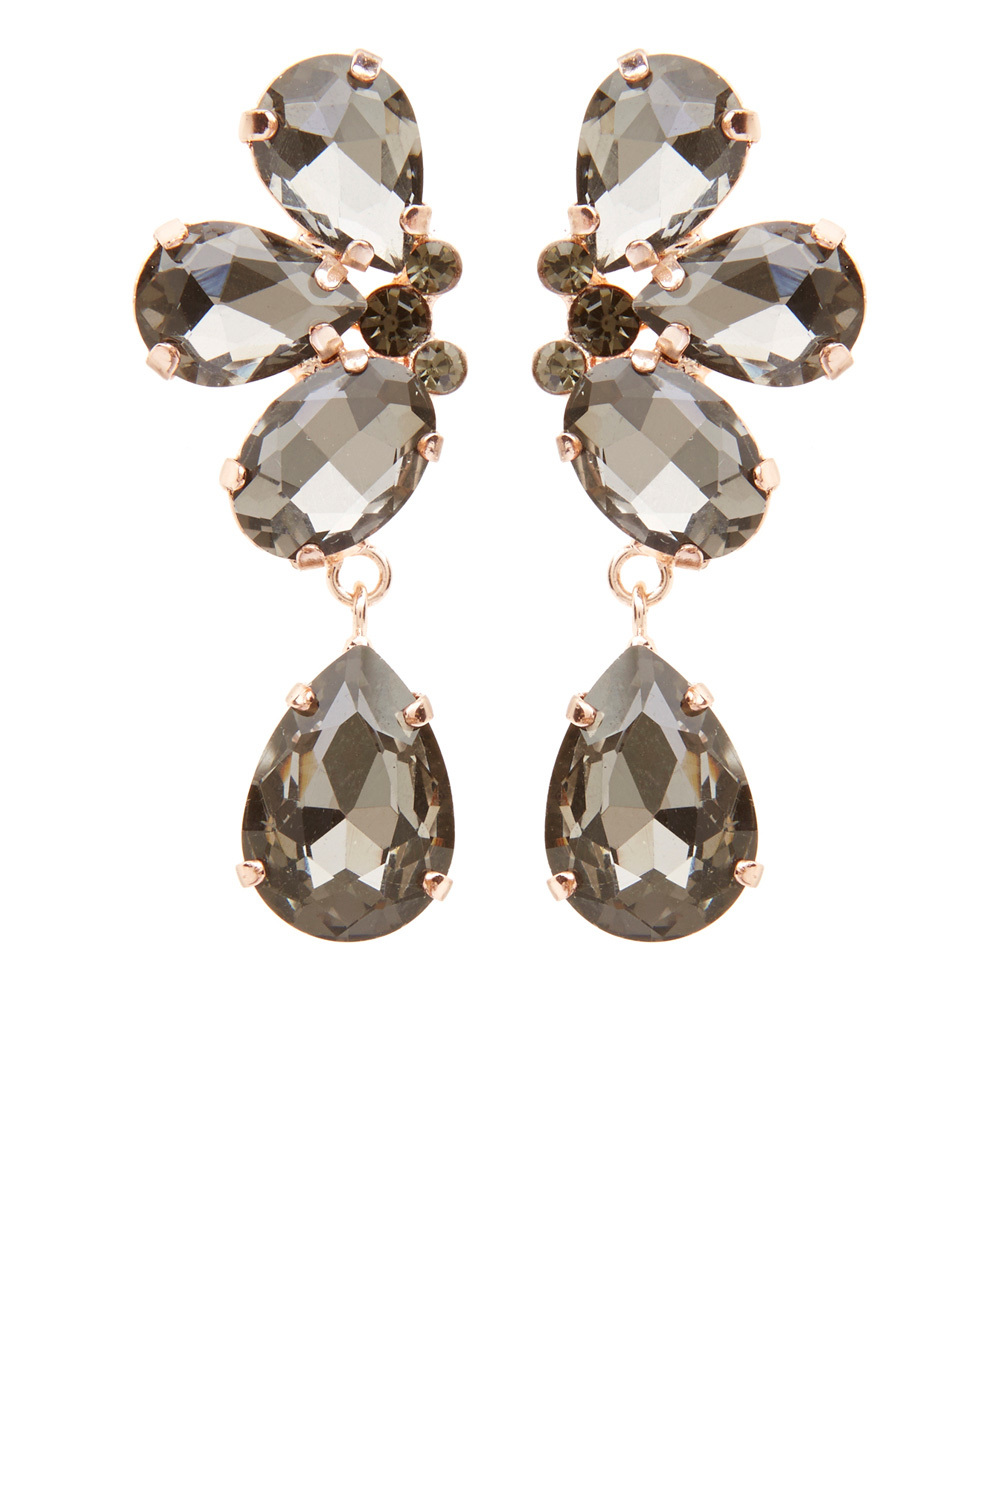 Gabi Statement Earrings - predominant colour: gold; occasions: evening, creative work; style: drop; length: long; size: large/oversized; material: chain/metal; fastening: pierced; finish: plain; embellishment: jewels/stone; season: a/w 2016; wardrobe: highlight